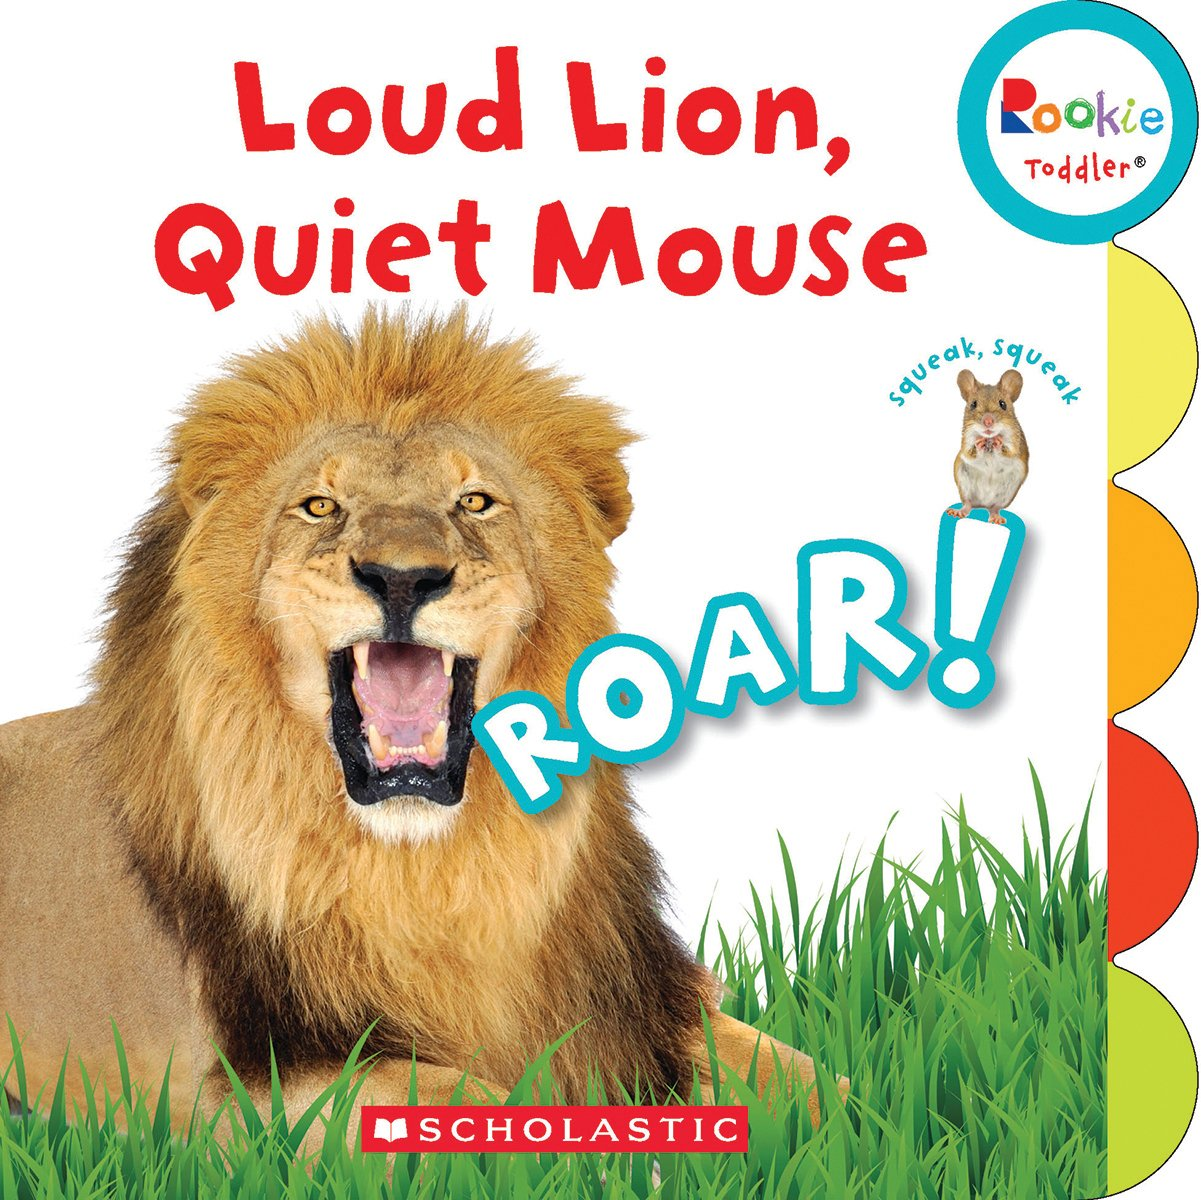 Loud Lion, Quiet Mouse (Rookie Toddler)